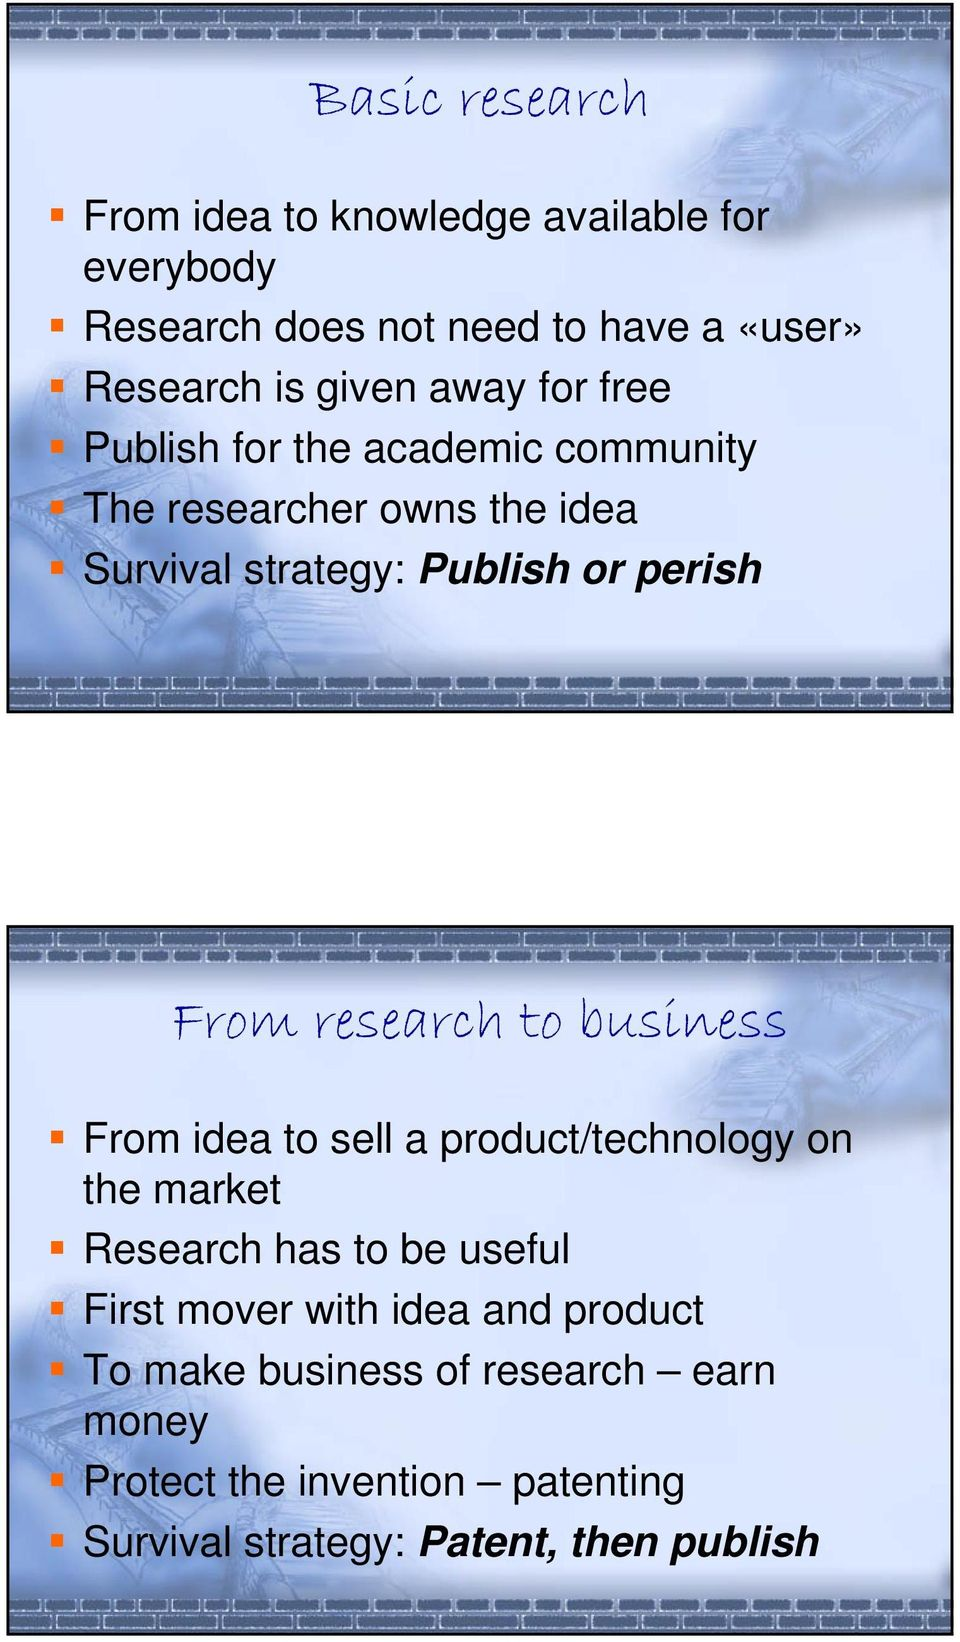 research to business From idea to sell a product/technology on the market Research has to be useful First mover with idea